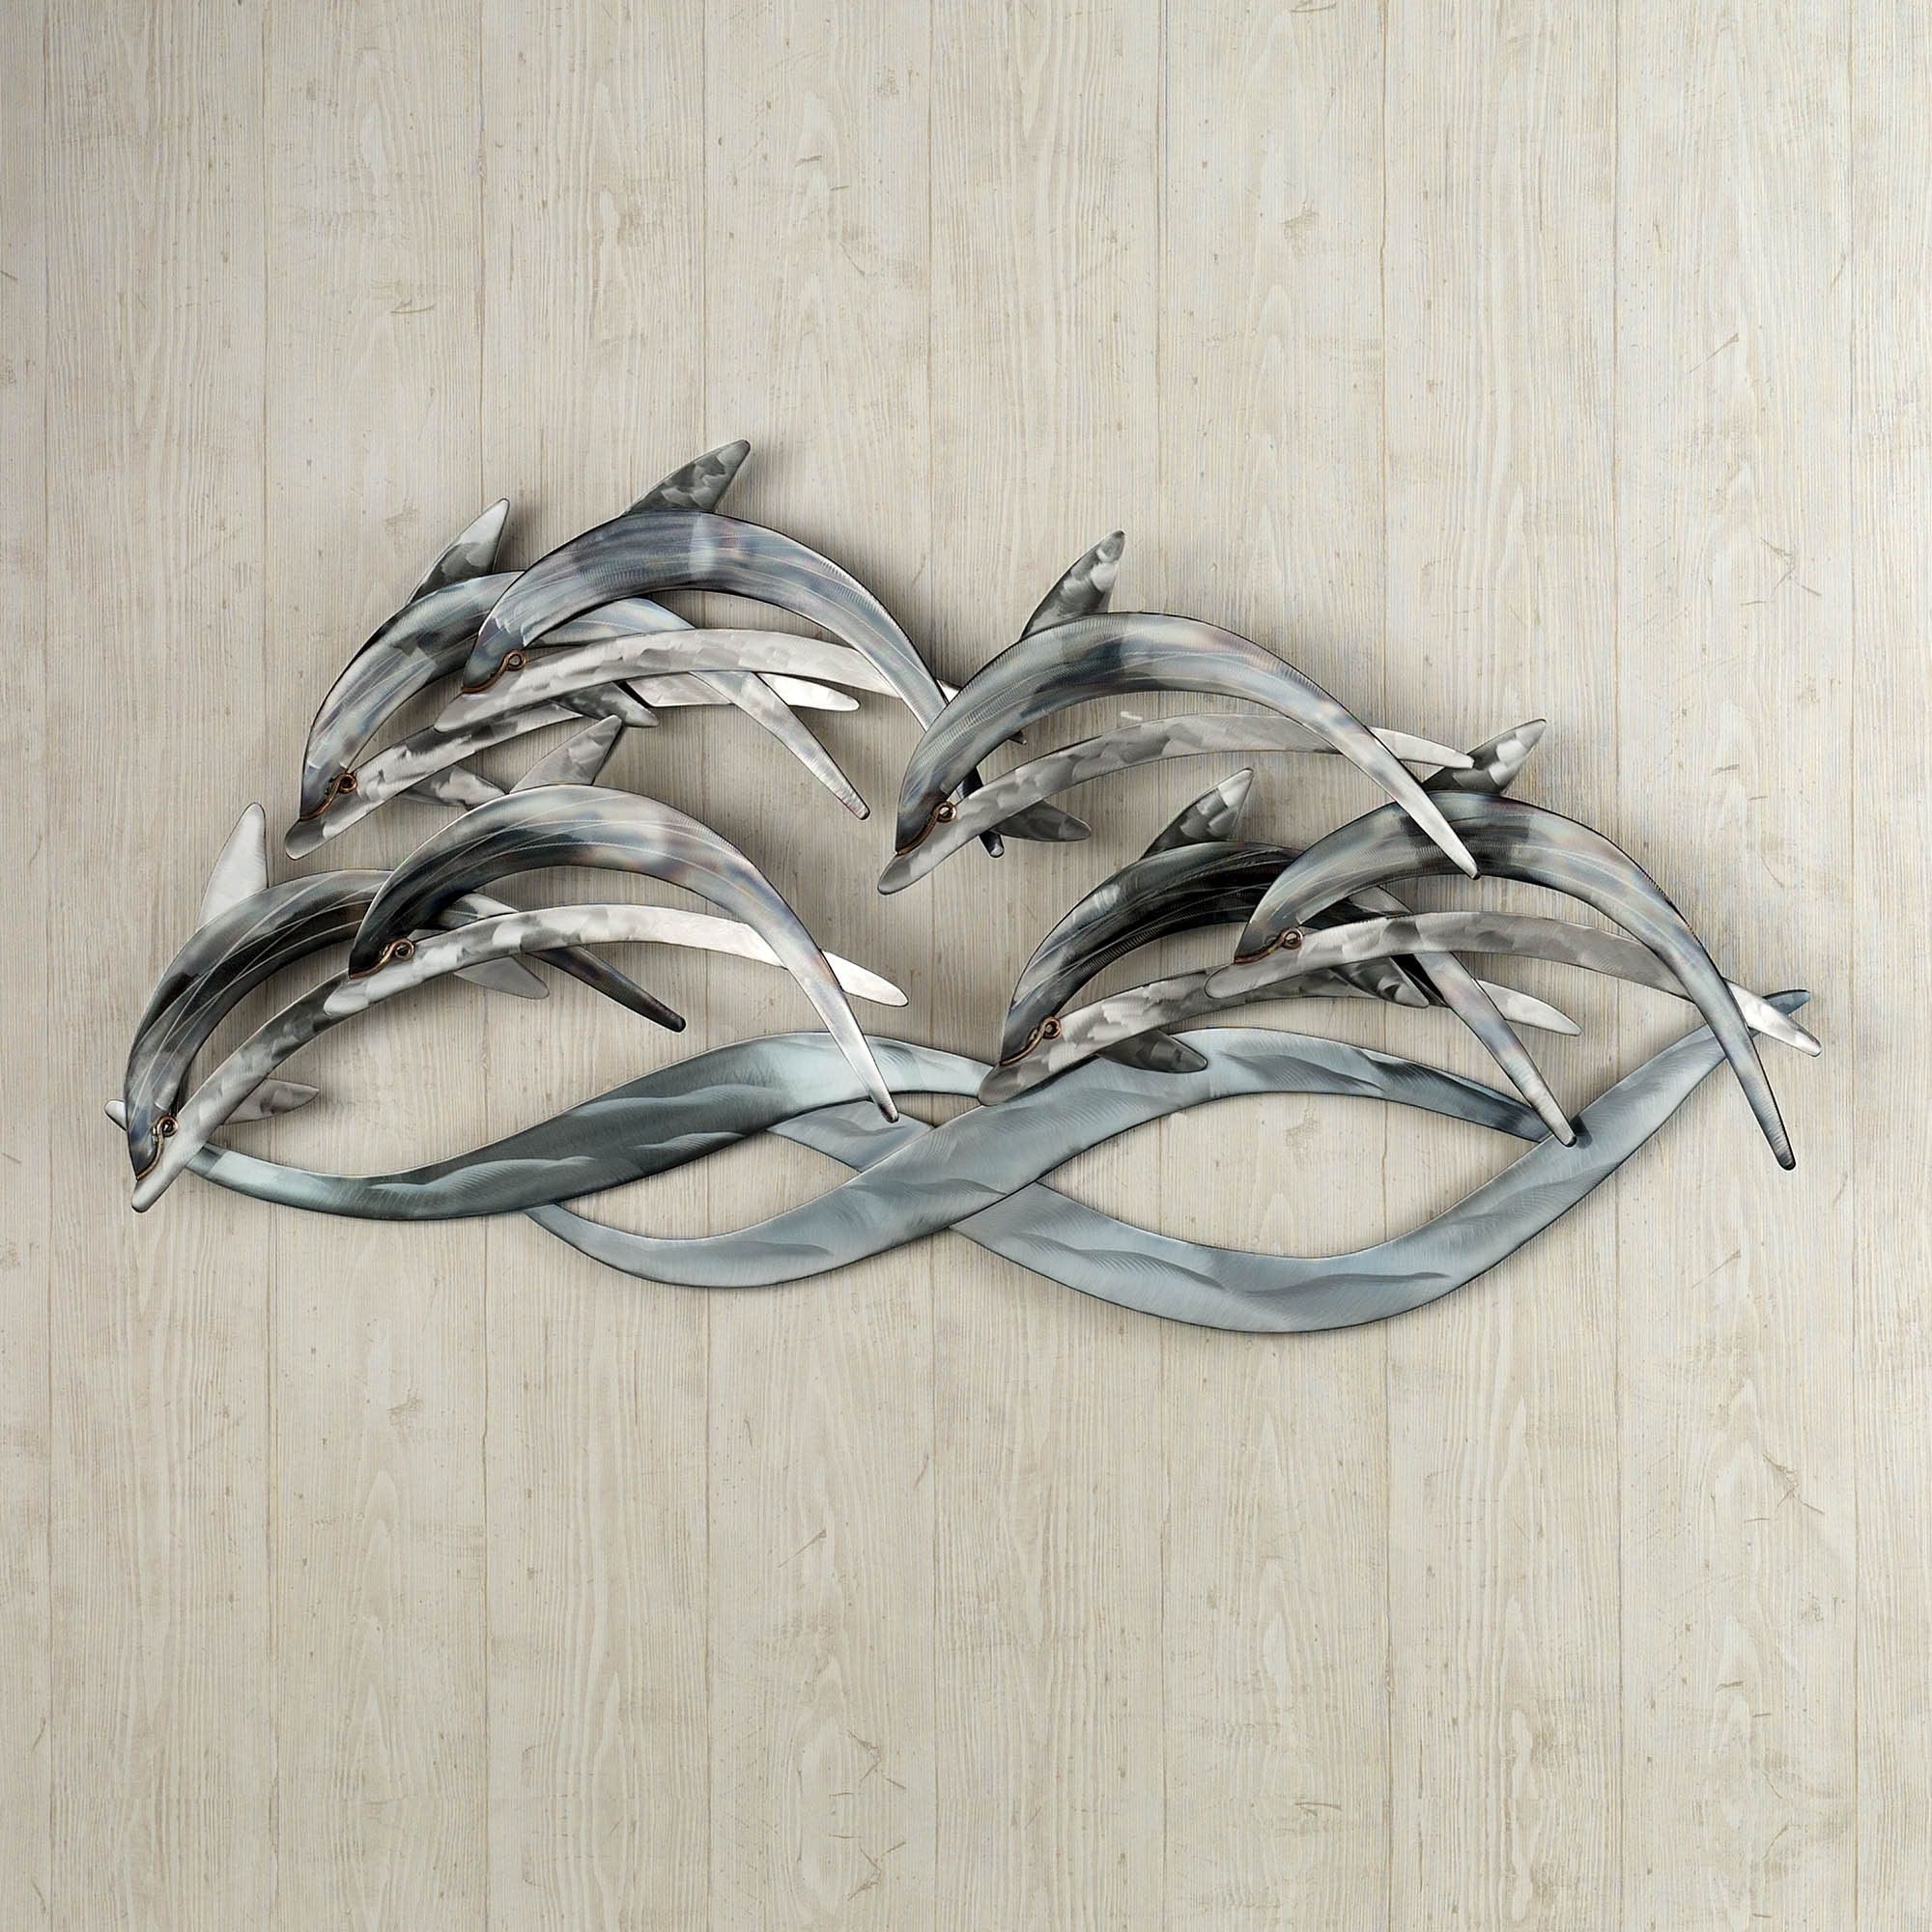 339 wave dancers dolphin stainless steel wall sculpture